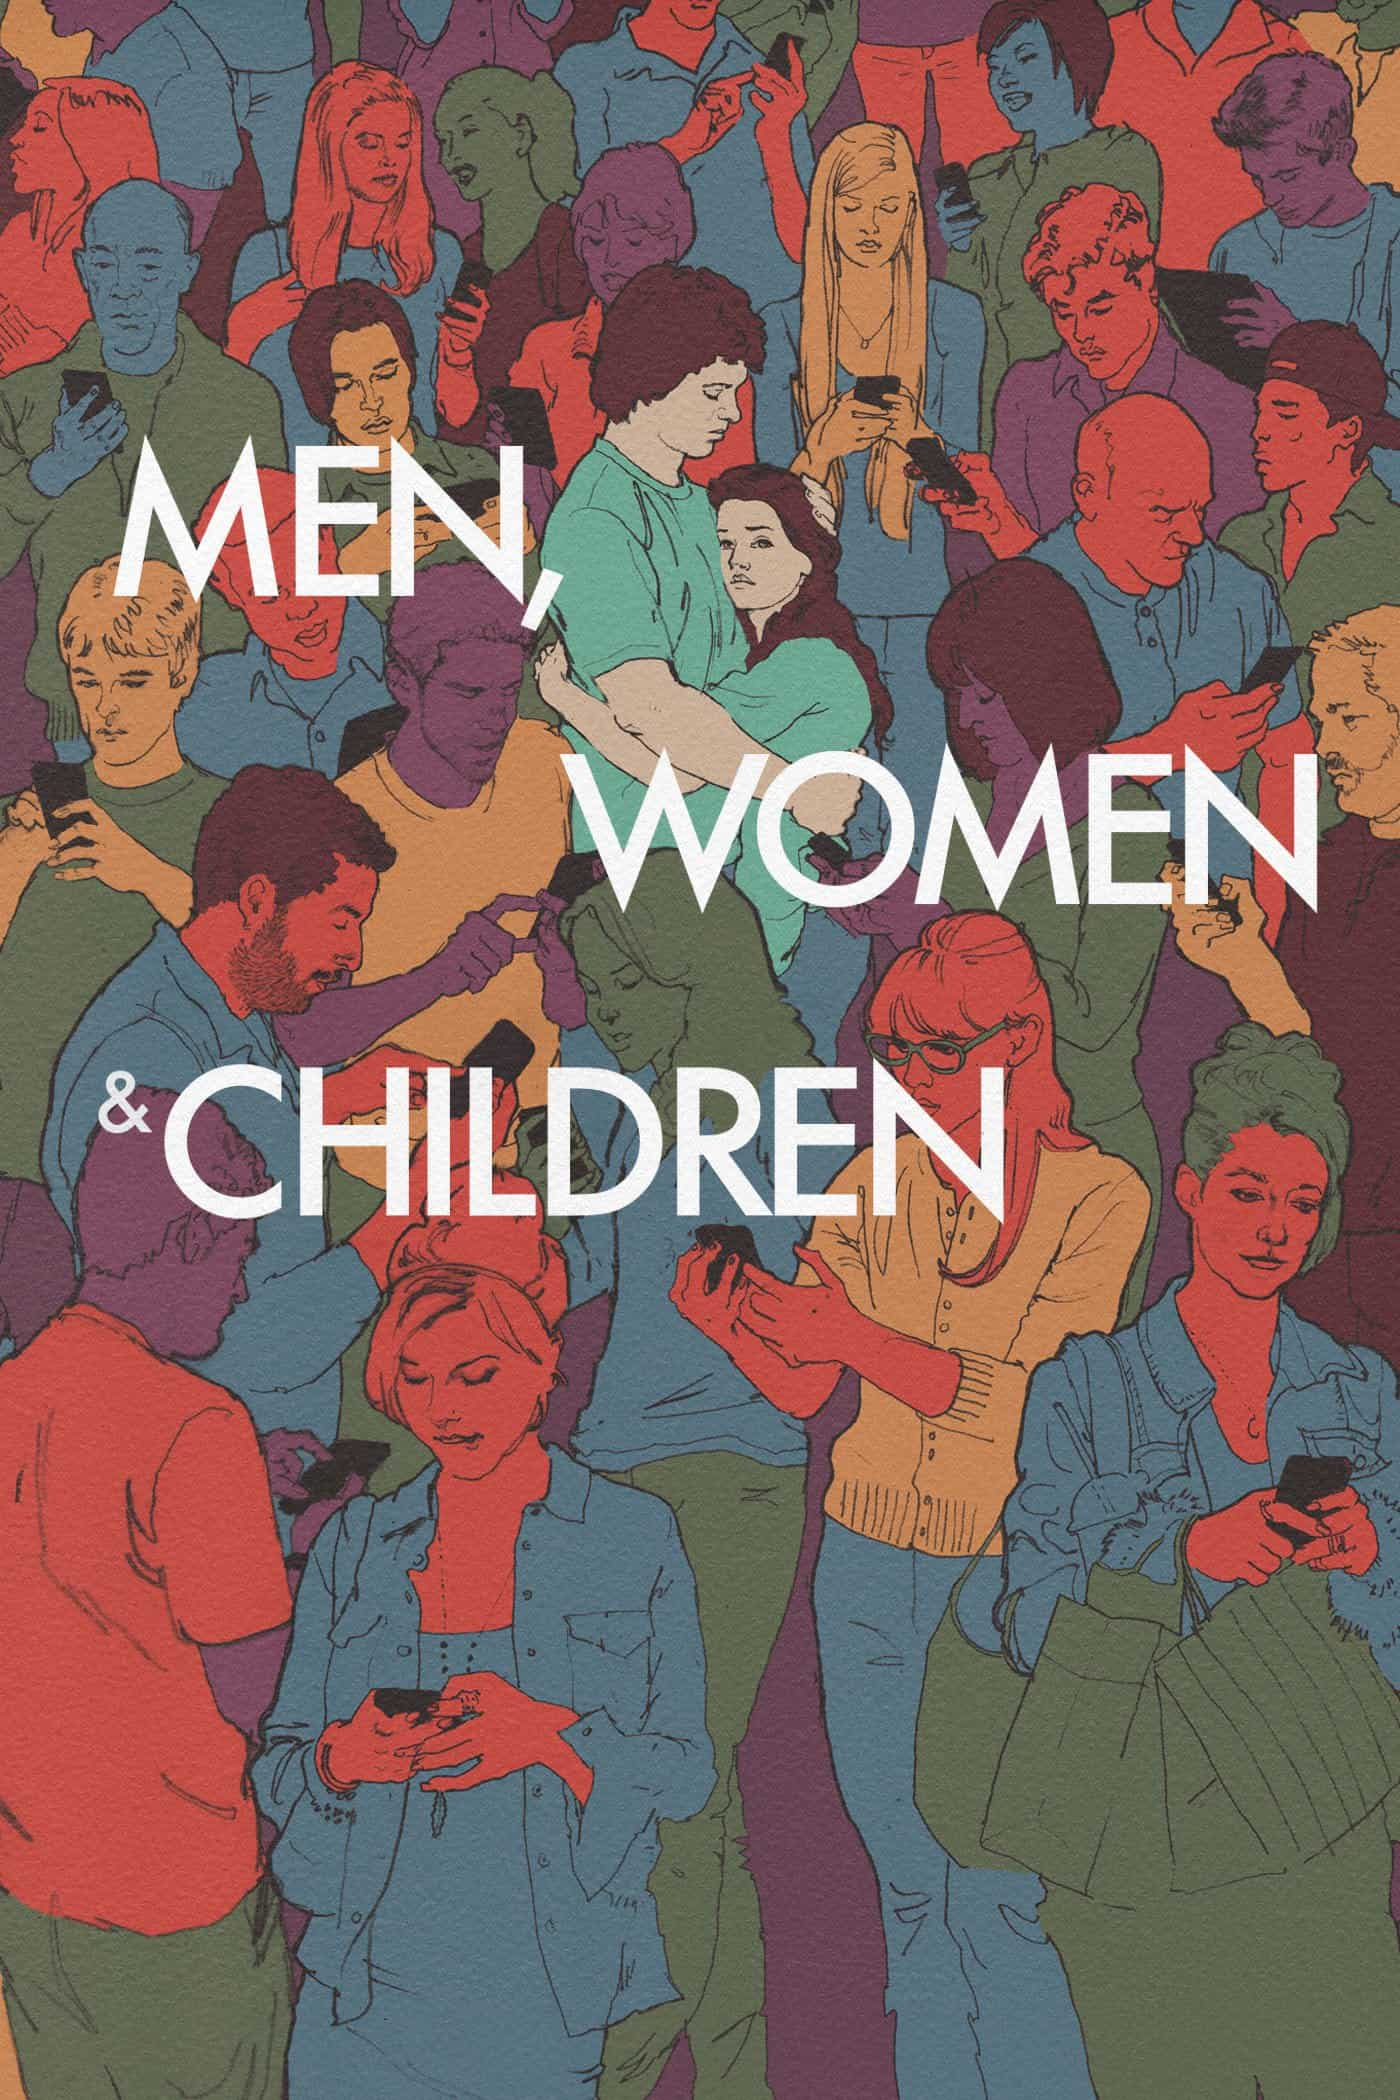 Men, Women and Children, 2014